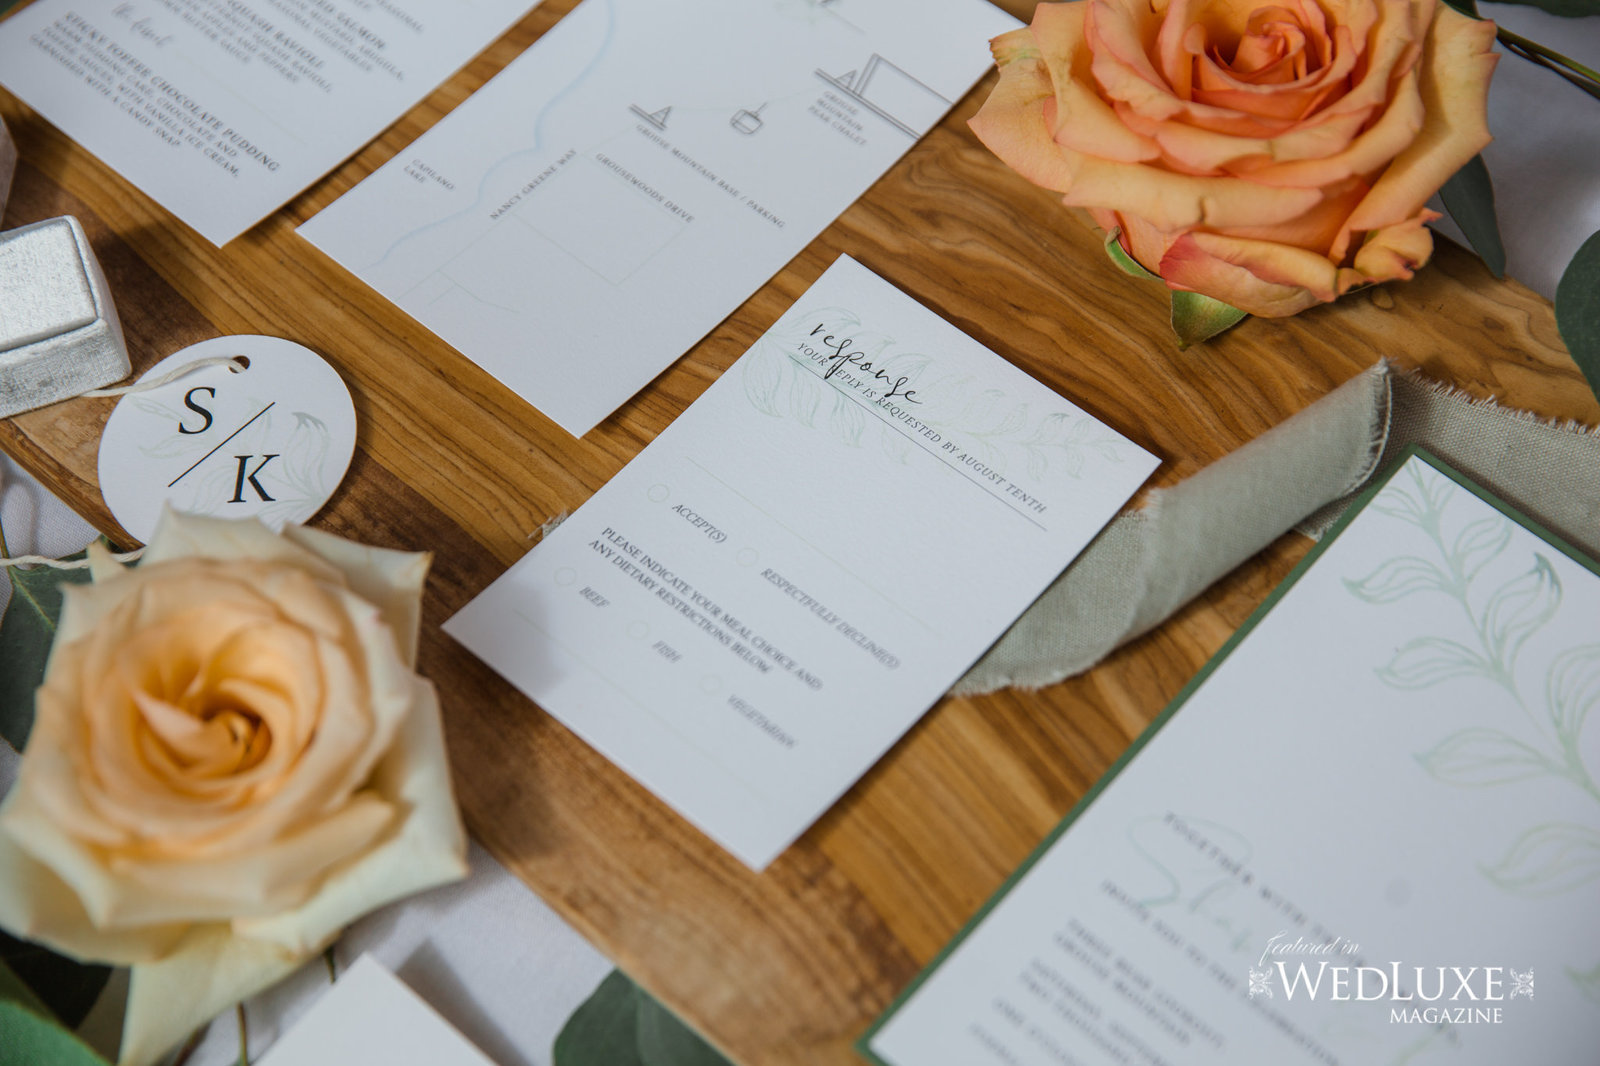 Styled Wedluxe Magazine Rustic Retreat invitations